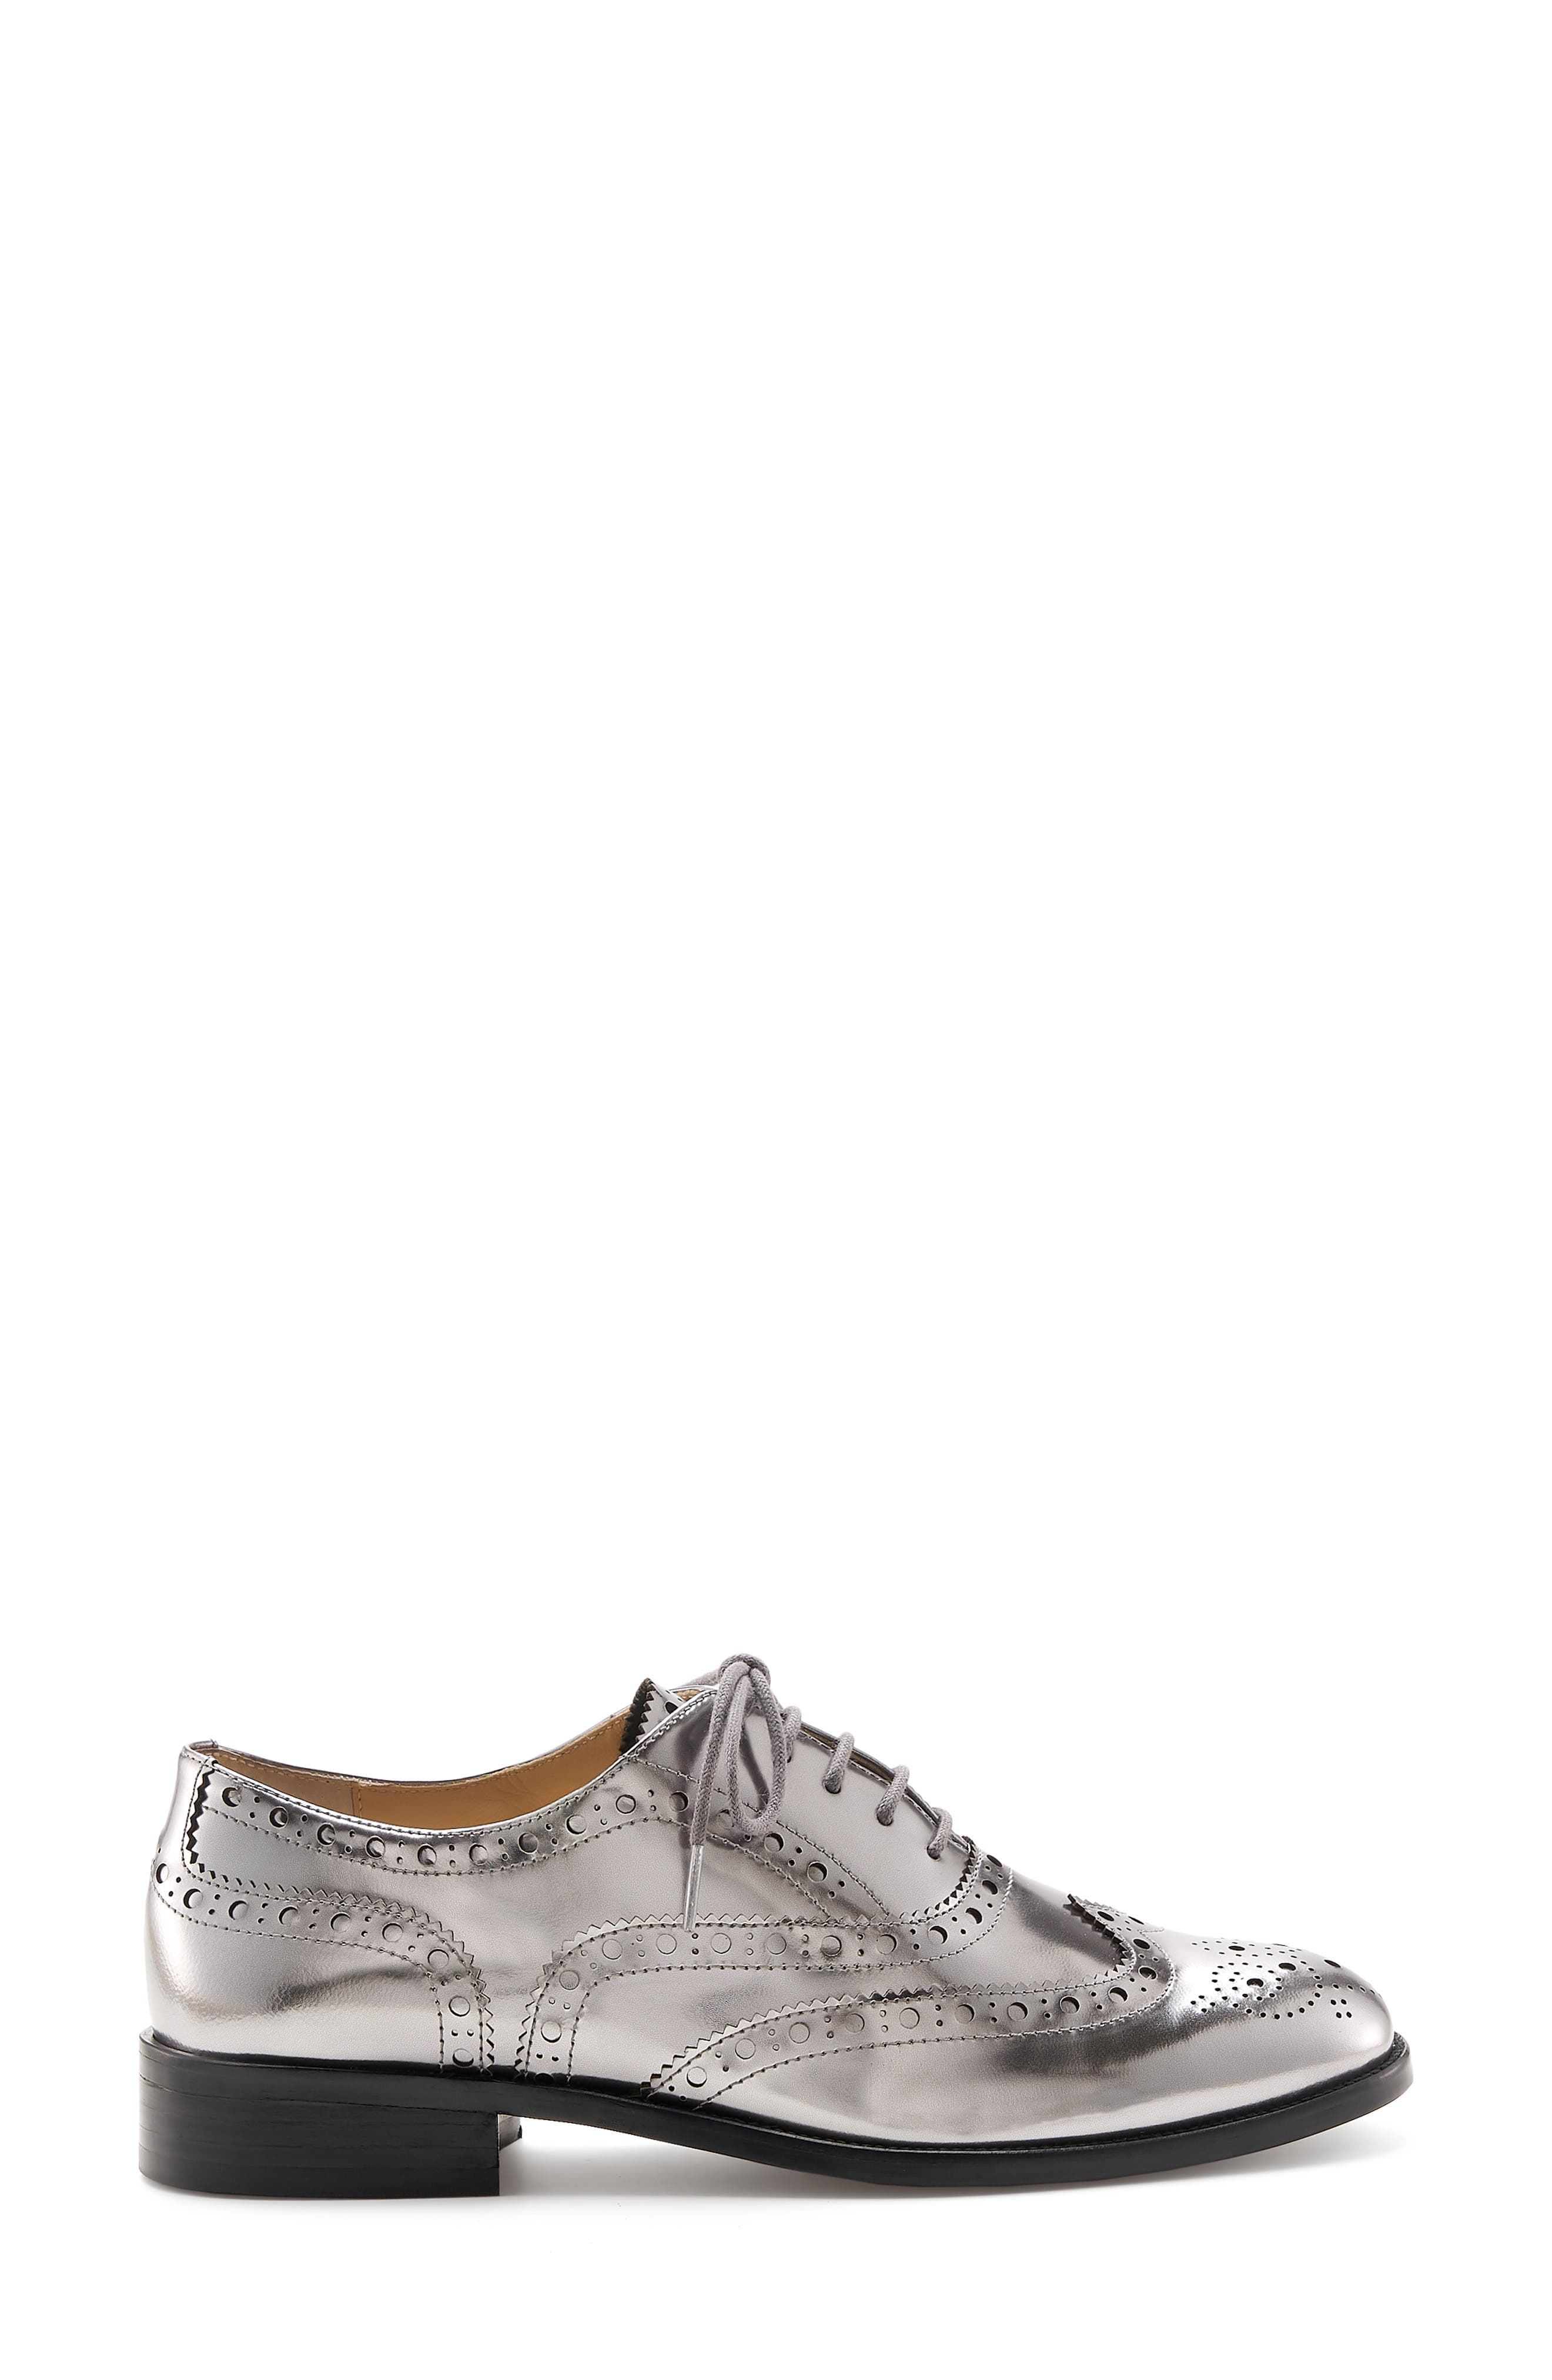 BOTKIER, Calista Metallic Wingtip Oxford, Alternate thumbnail 3, color, PEWTER METALLIC